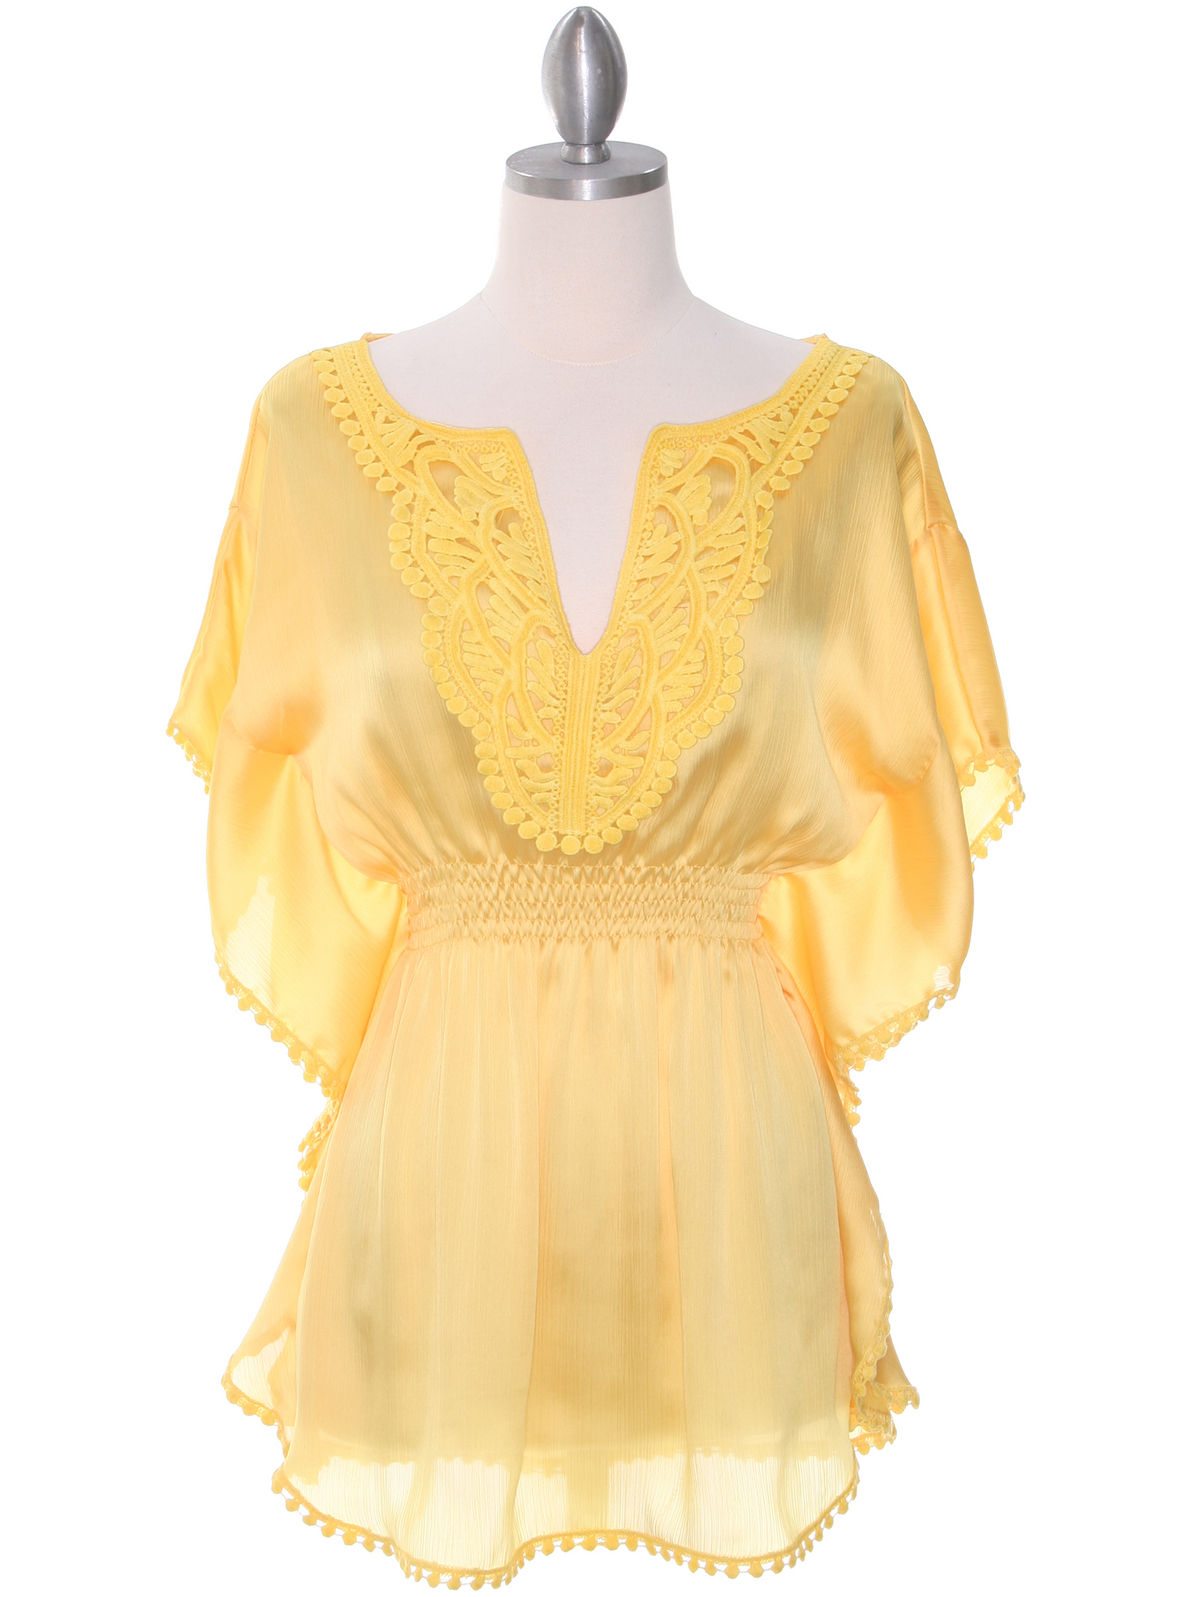 Yellow Silk Chiffon Top | Sung Boutique L.A.